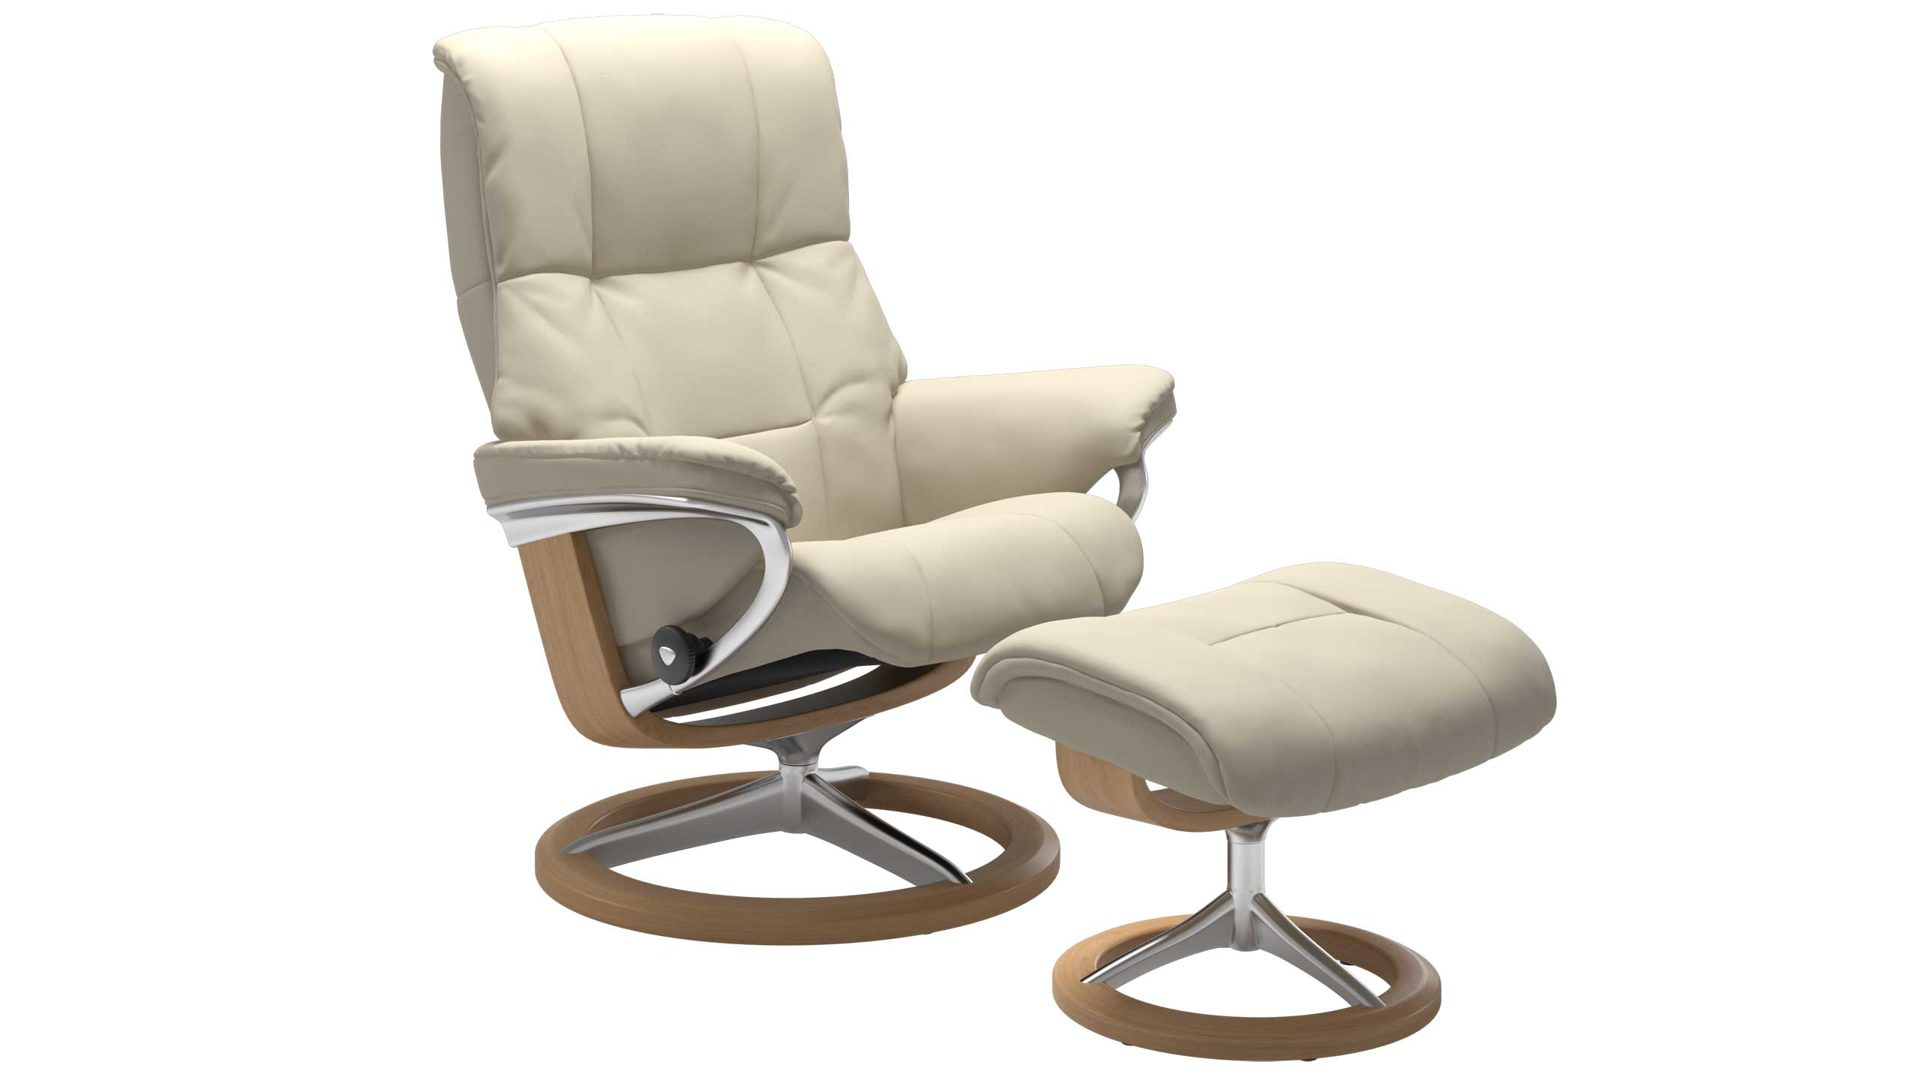 Stressless Mayfair M Signature Relax Sessel Und Hocker Leder Signature Oak Bad Homburg Bei Frankfurt